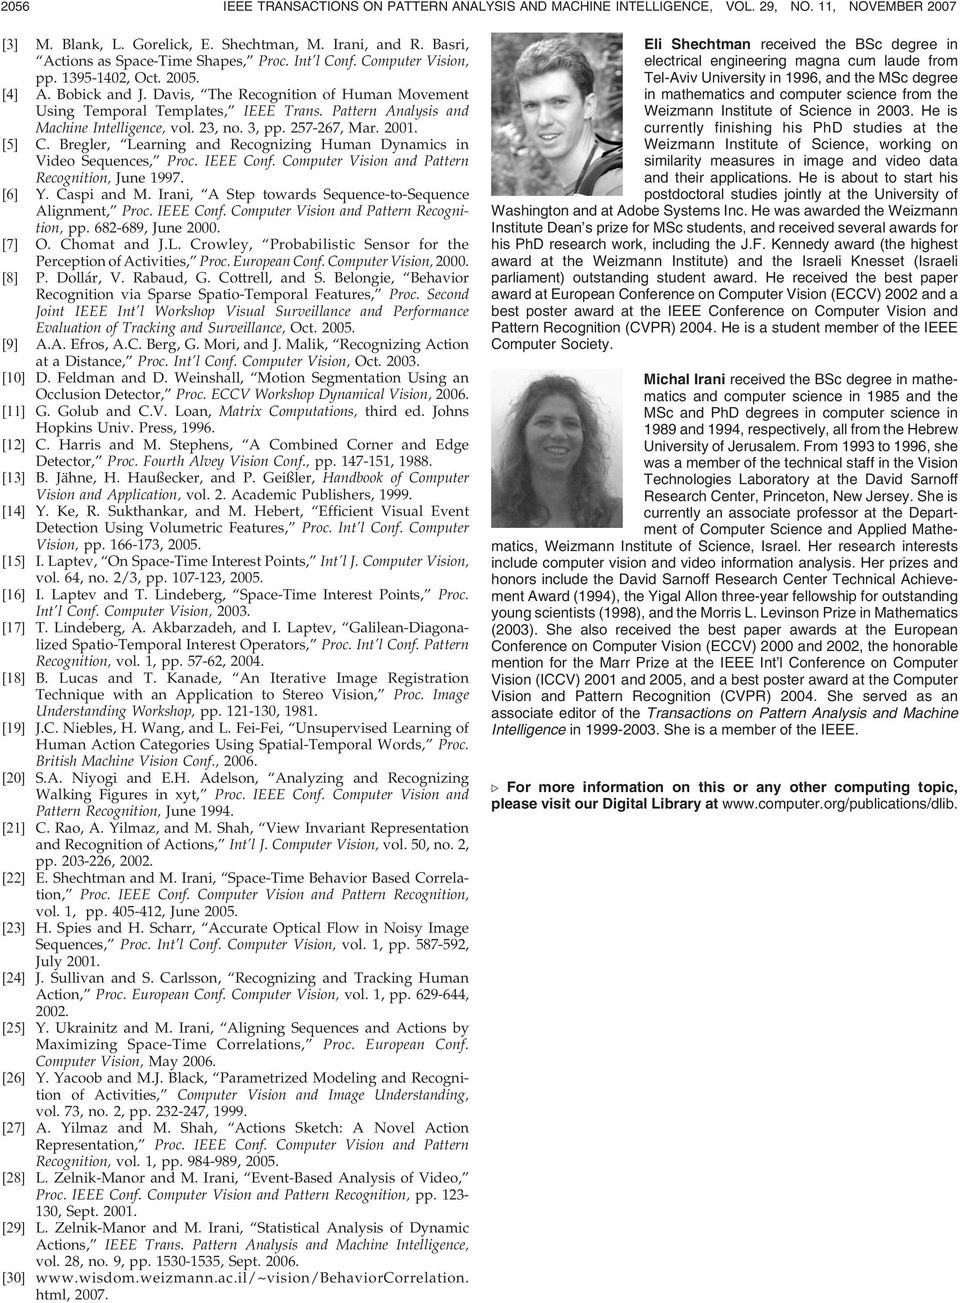 3, no. 3, pp. 57-67, Mar. 00. [5] C. Bregler, Learning and Recognizing Human Dynamics in Video Sequences, Proc. IEEE Conf. Computer Vision and Pattern Recognition, June 997. [6] Y. Caspi and M.